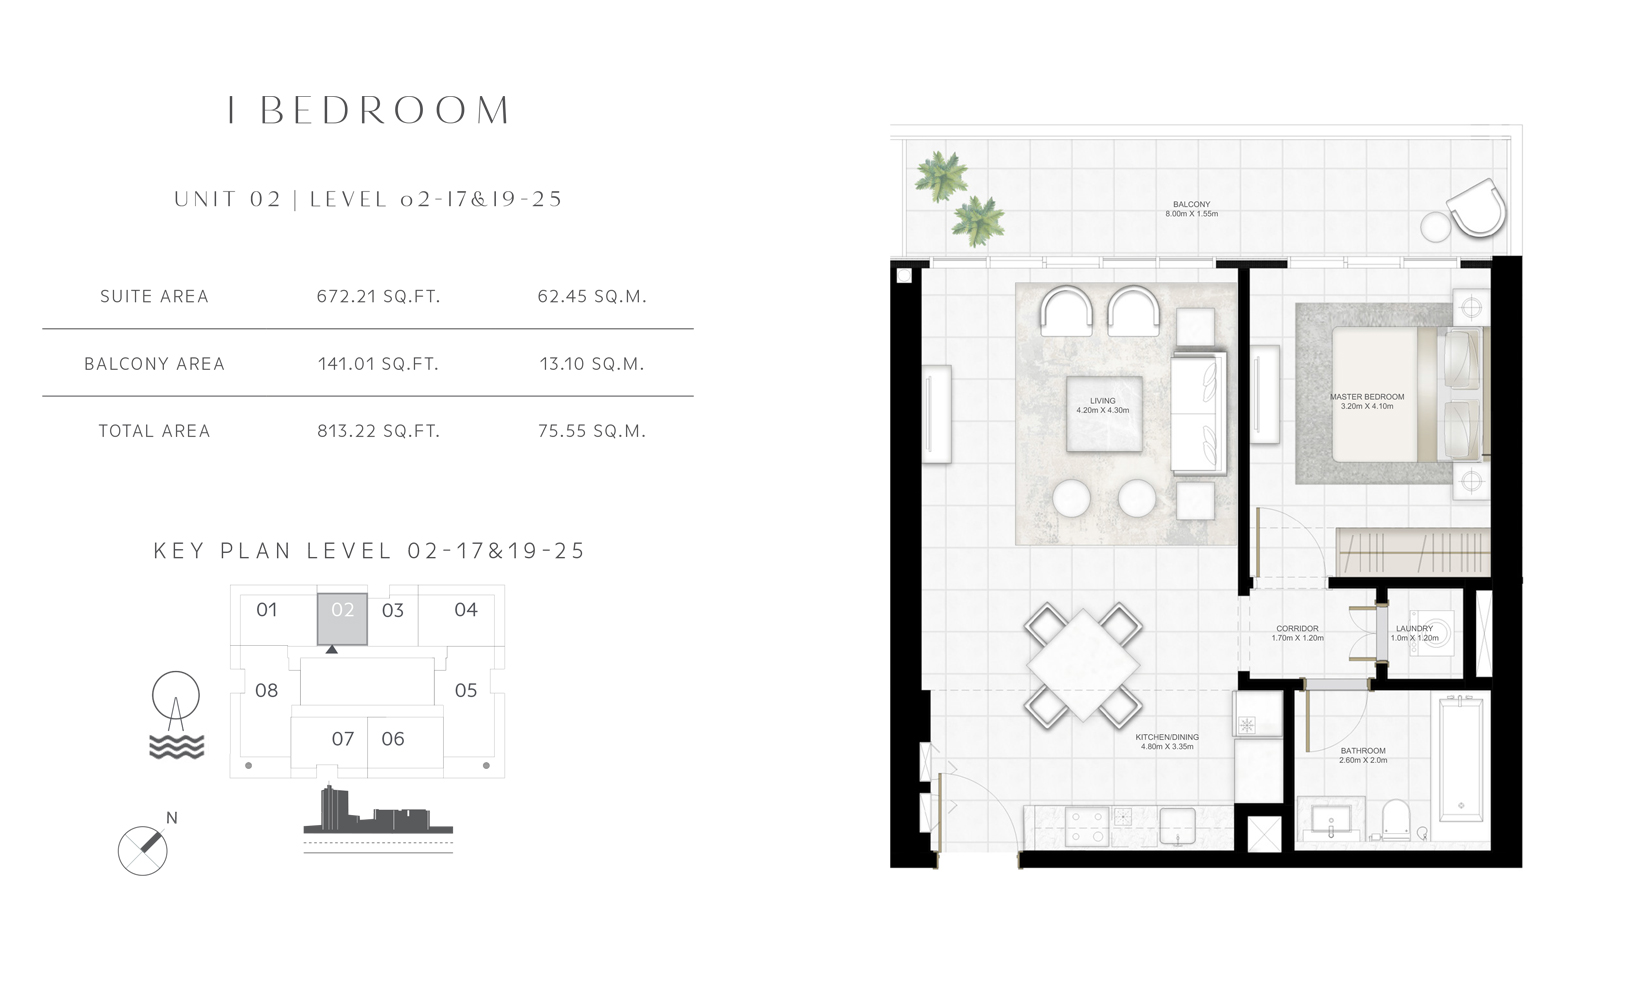 1 Bedroom Unit 02 Level 02-17 & 19-25 Size 813.22 sq.ft